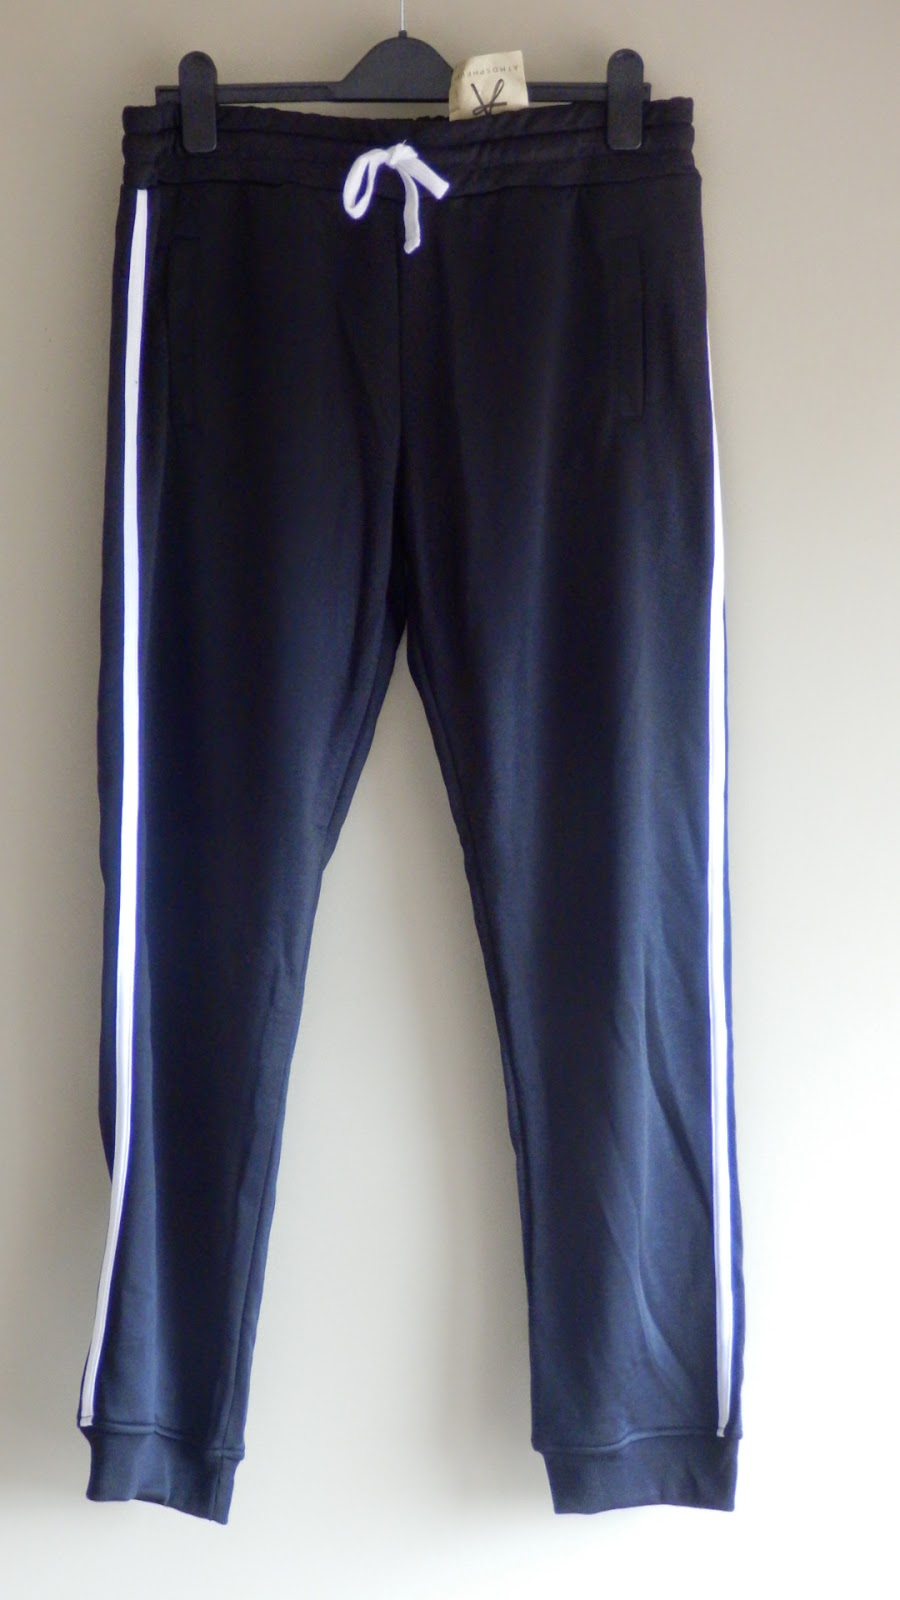 Primark Black retro jogging bottoms